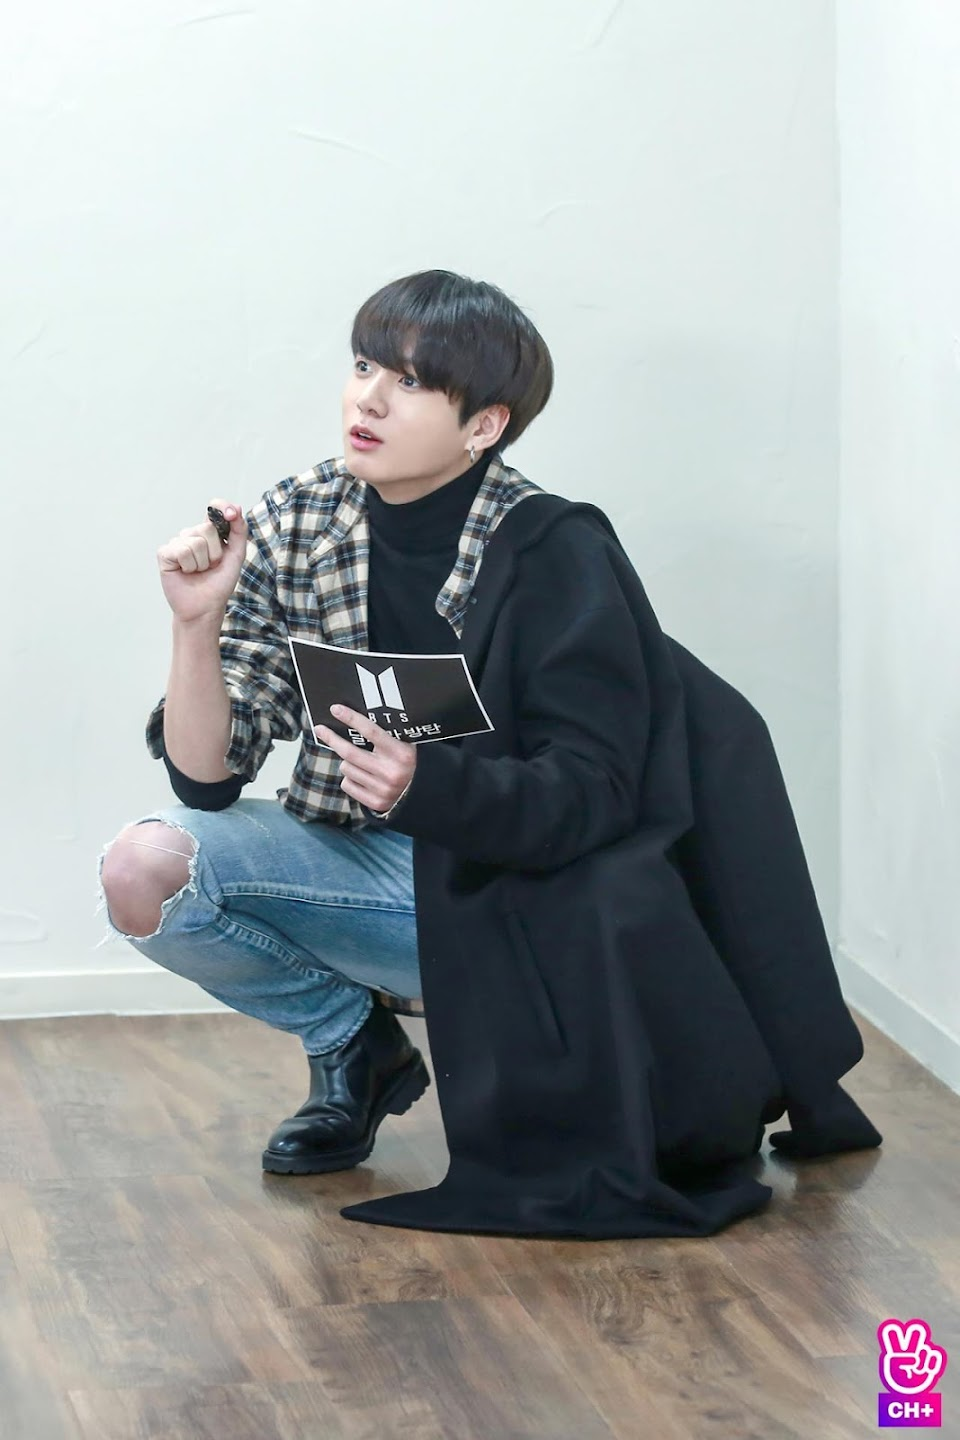 jungkookrippedjeans_8a